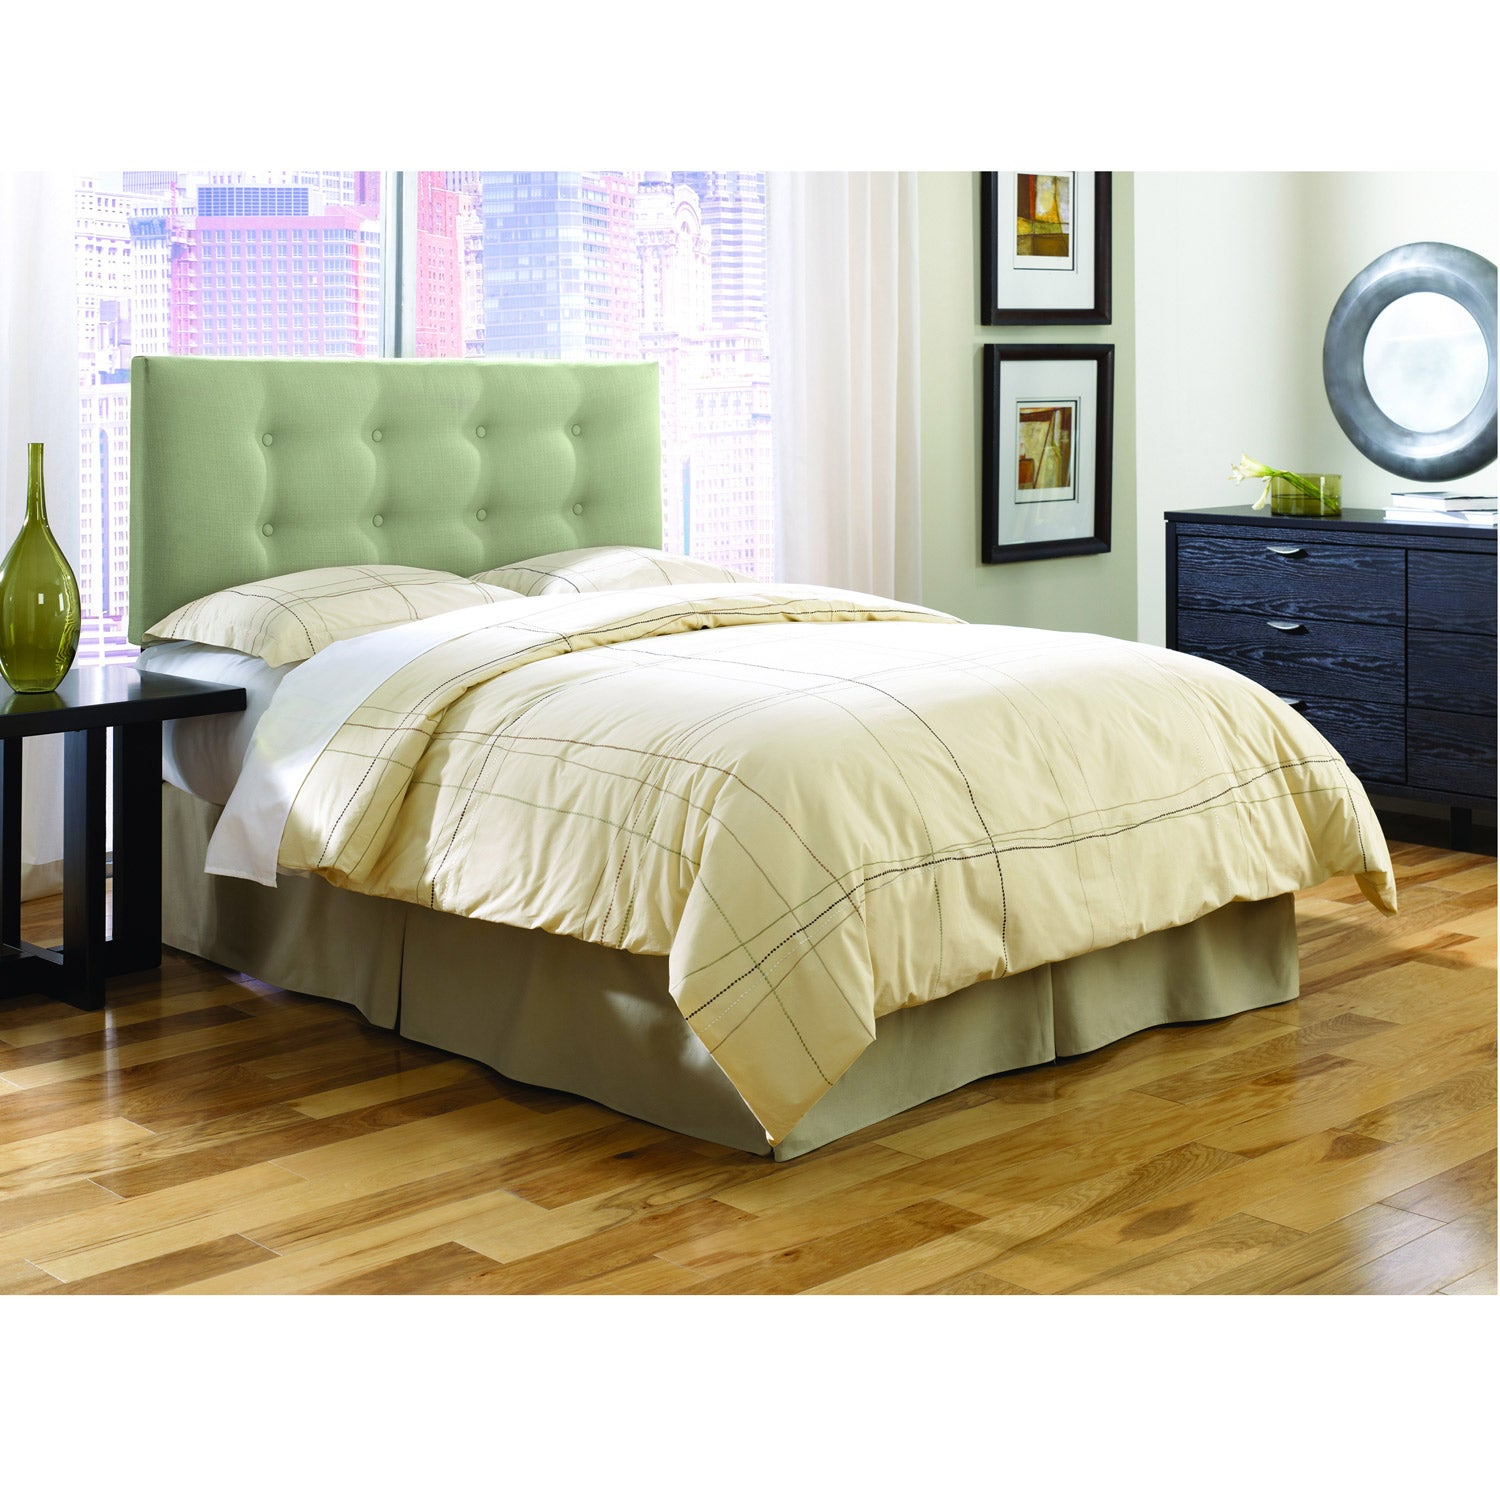 Chambery Sage Upholstered Queen/ Full-size Headboard